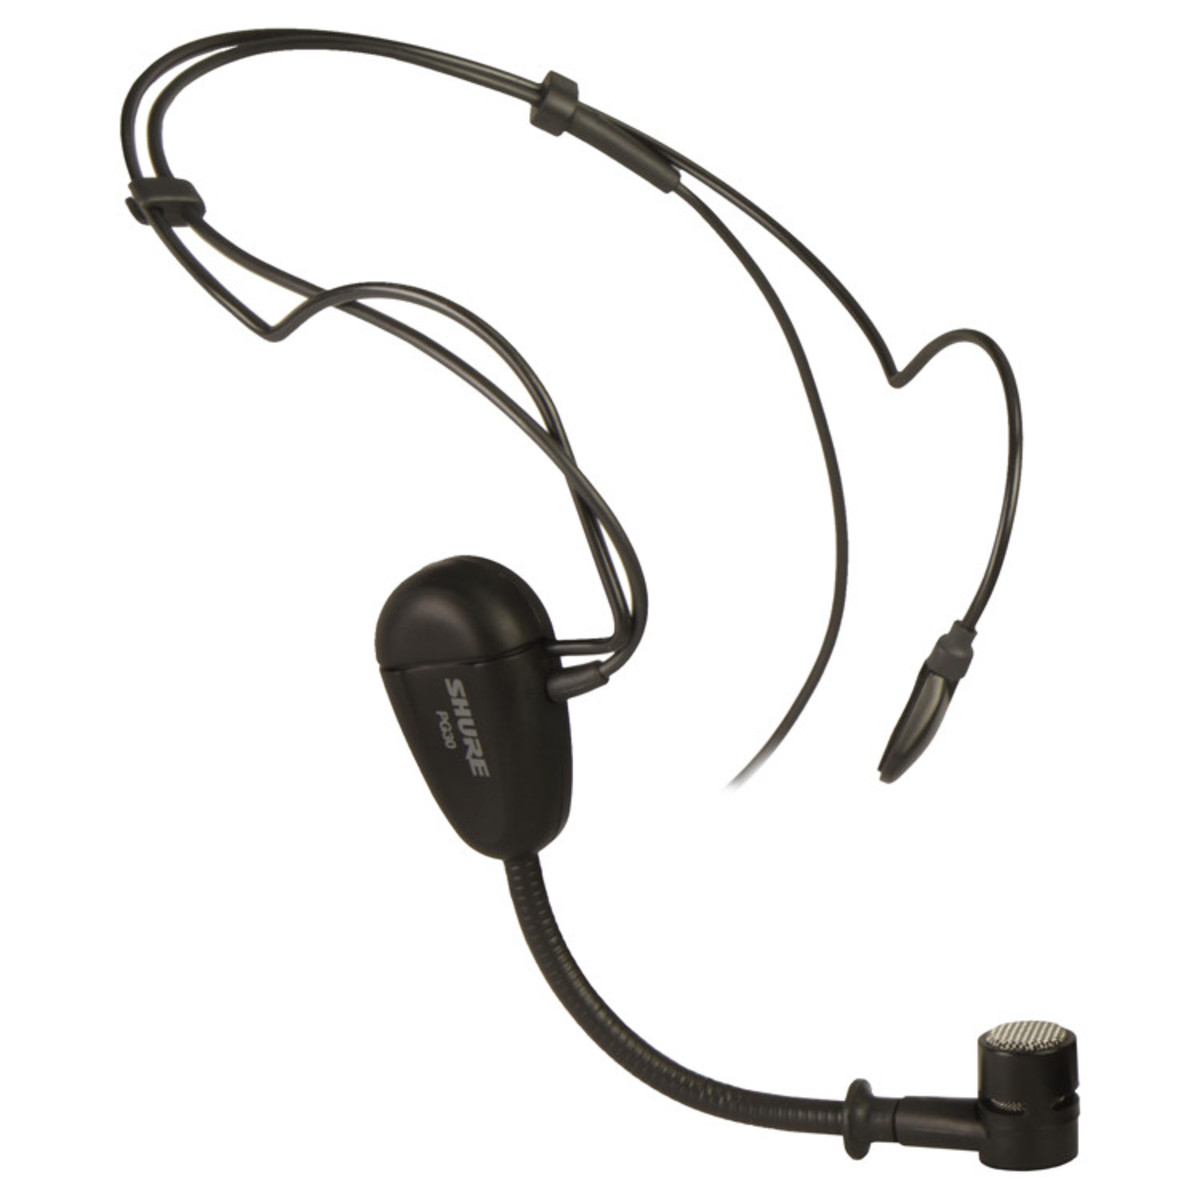 Dual driver earbuds without mic - microphone earbuds handheld singing